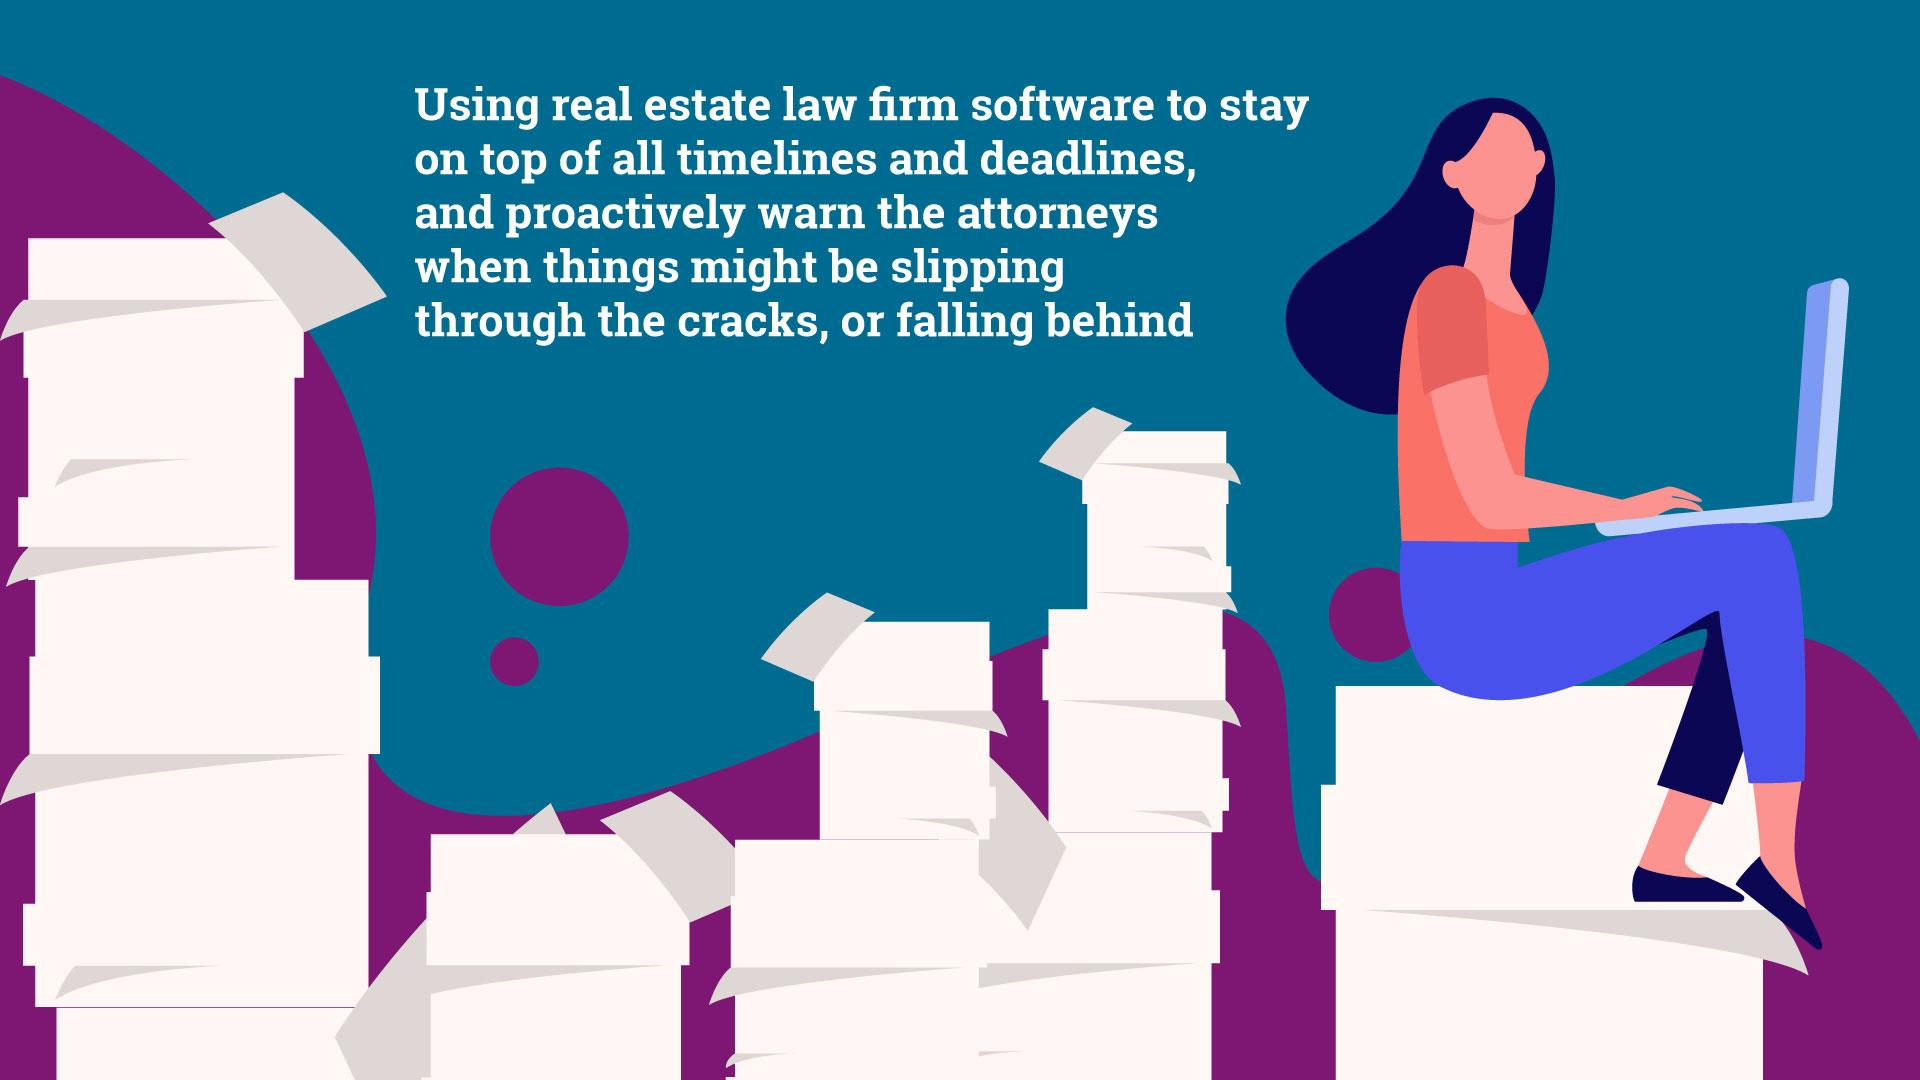 The key to real estate paralegal skills is managing multiple areas and staying focused